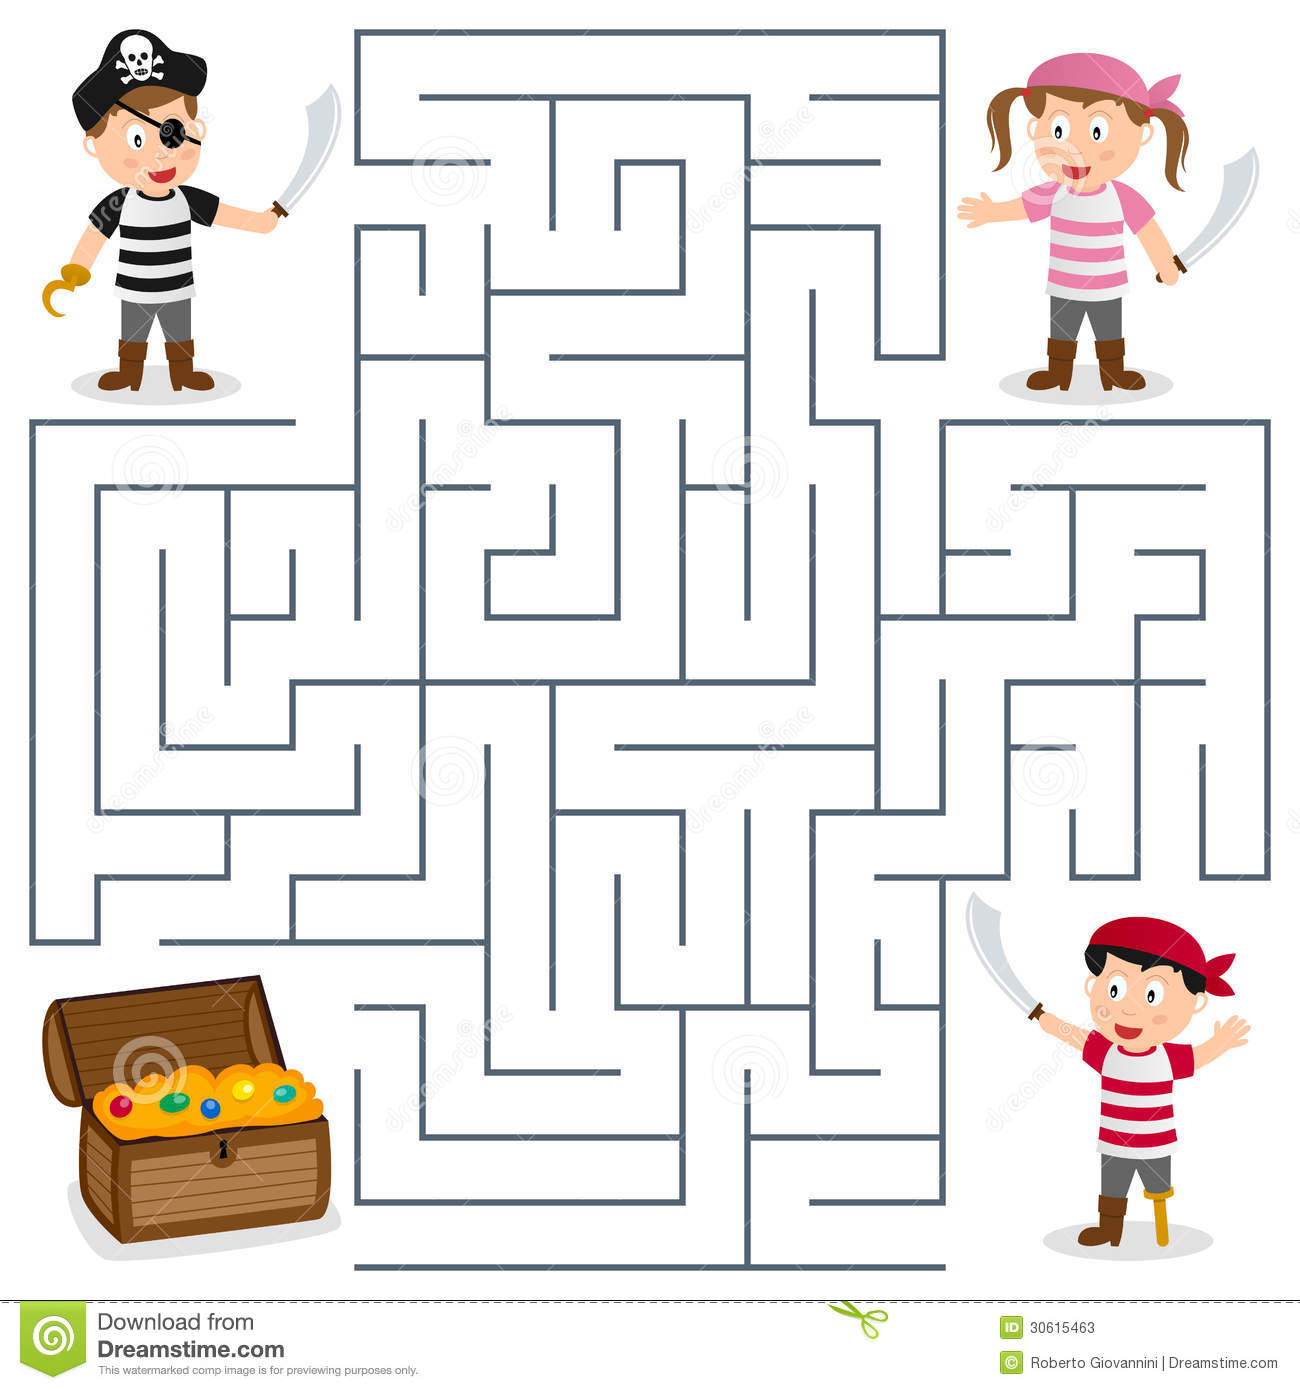 Stock Photos Pirates Treasure Maze Kids Box Game Children Help Three Find Way To Box Image30615463 on Free Printable Pirate Coloring Pages